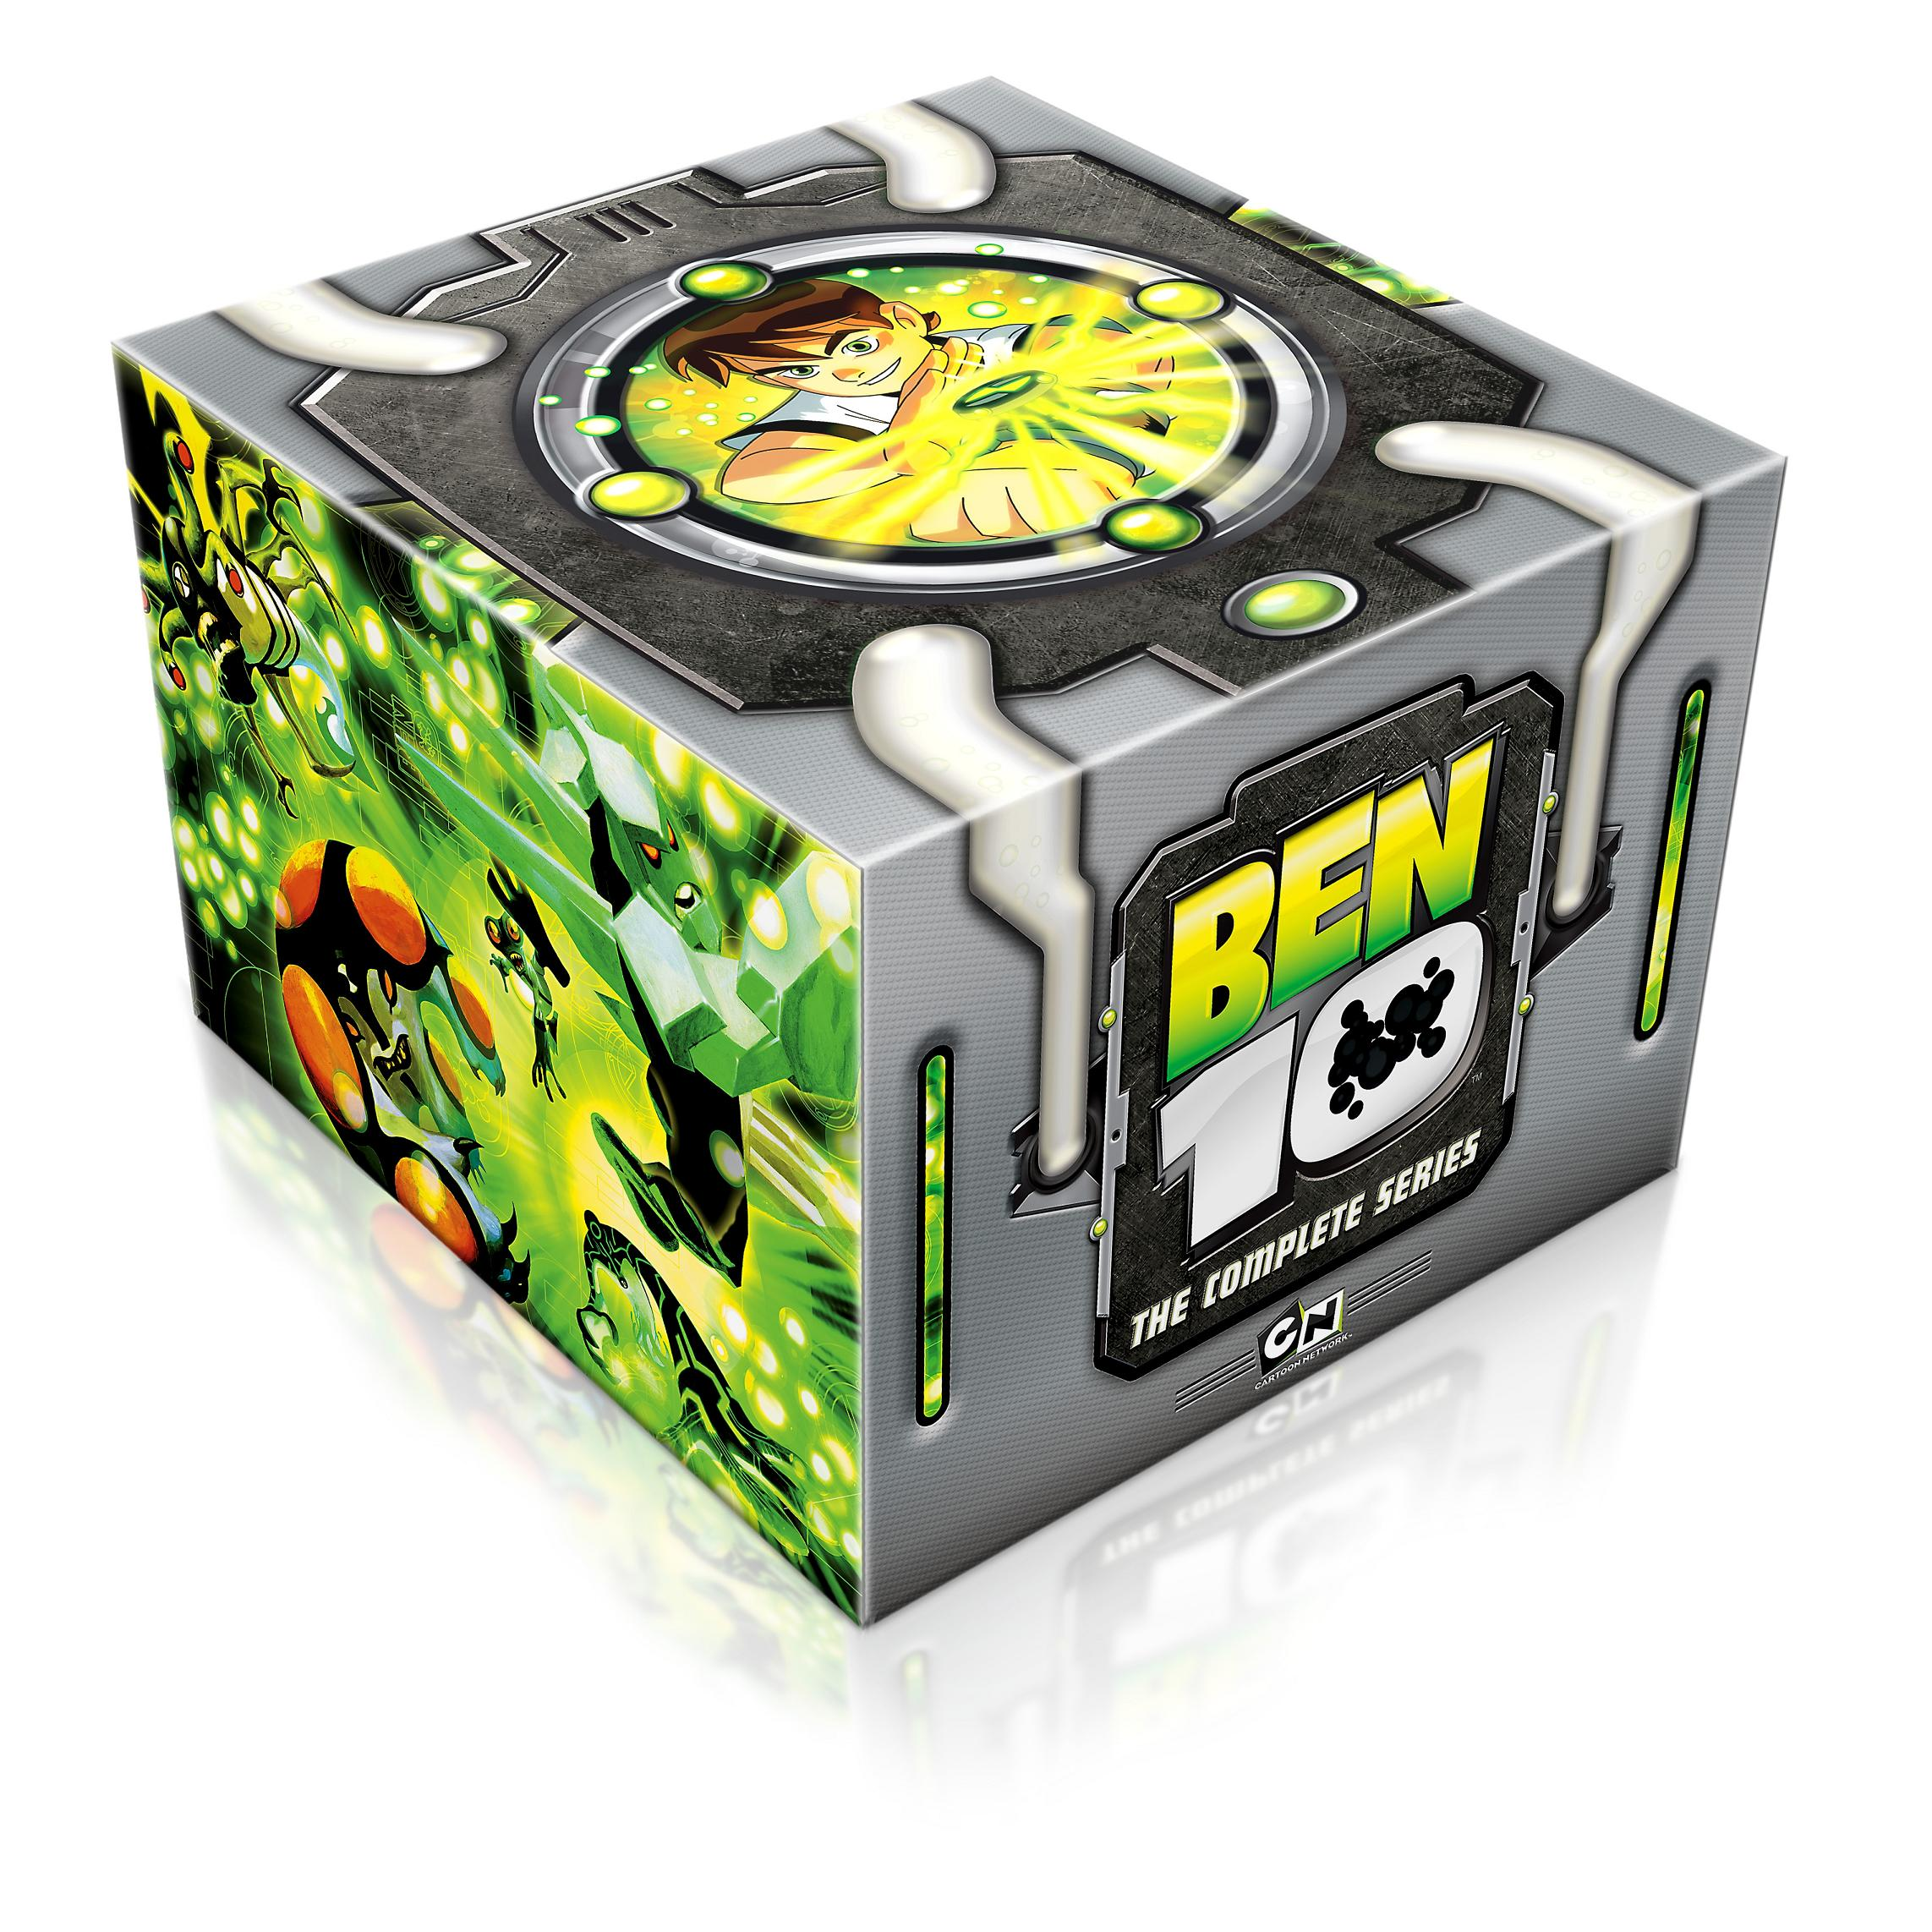 Ben 10 DVD box set